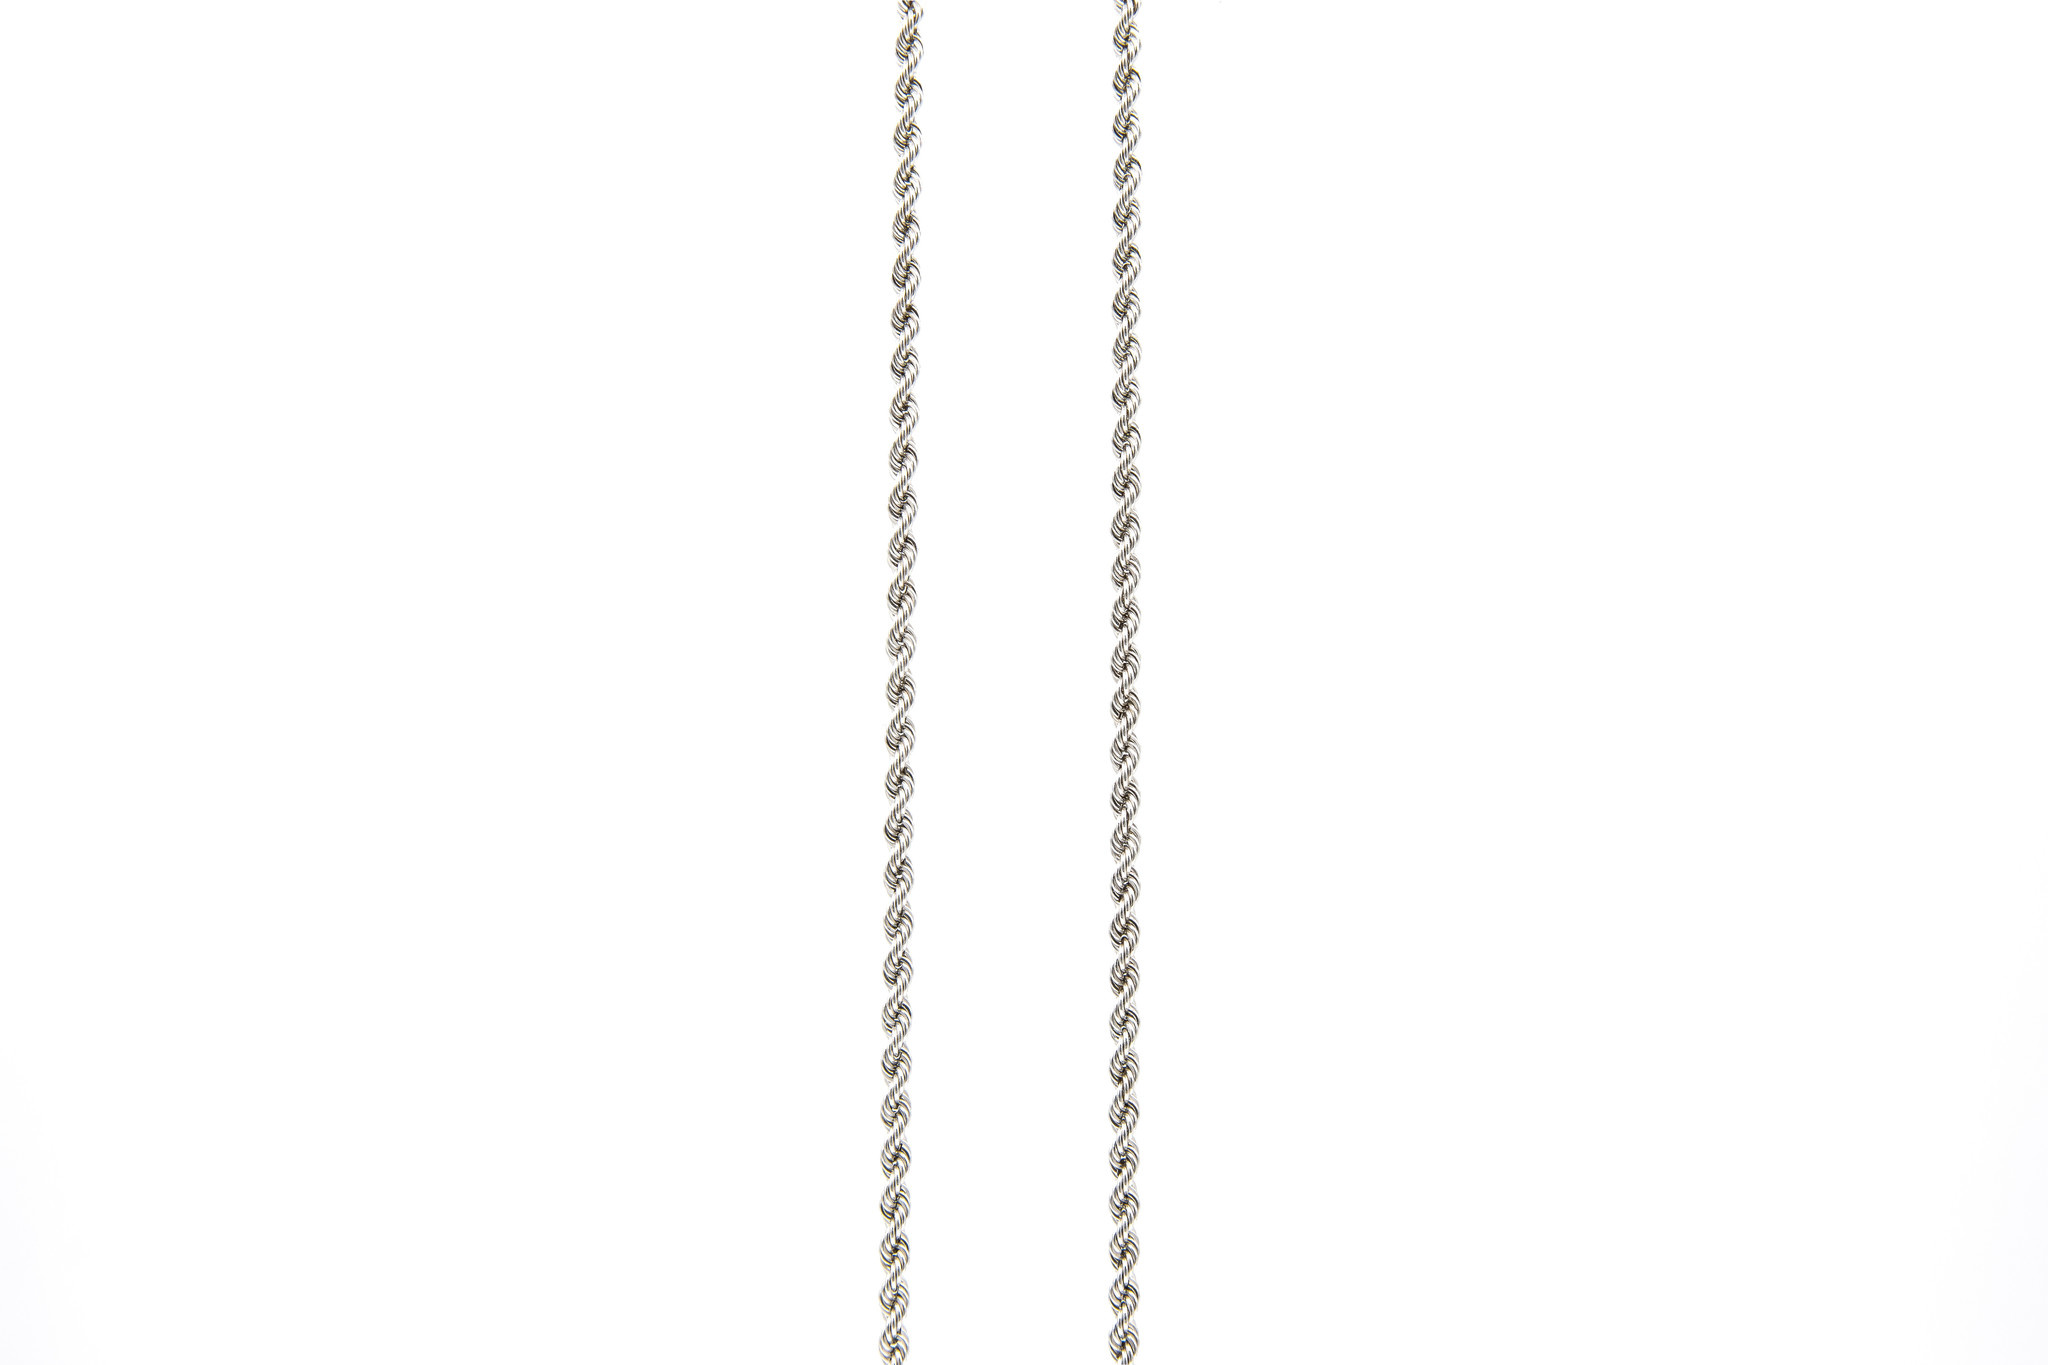 Rope chain witgoud 14kt 3.5mm-7